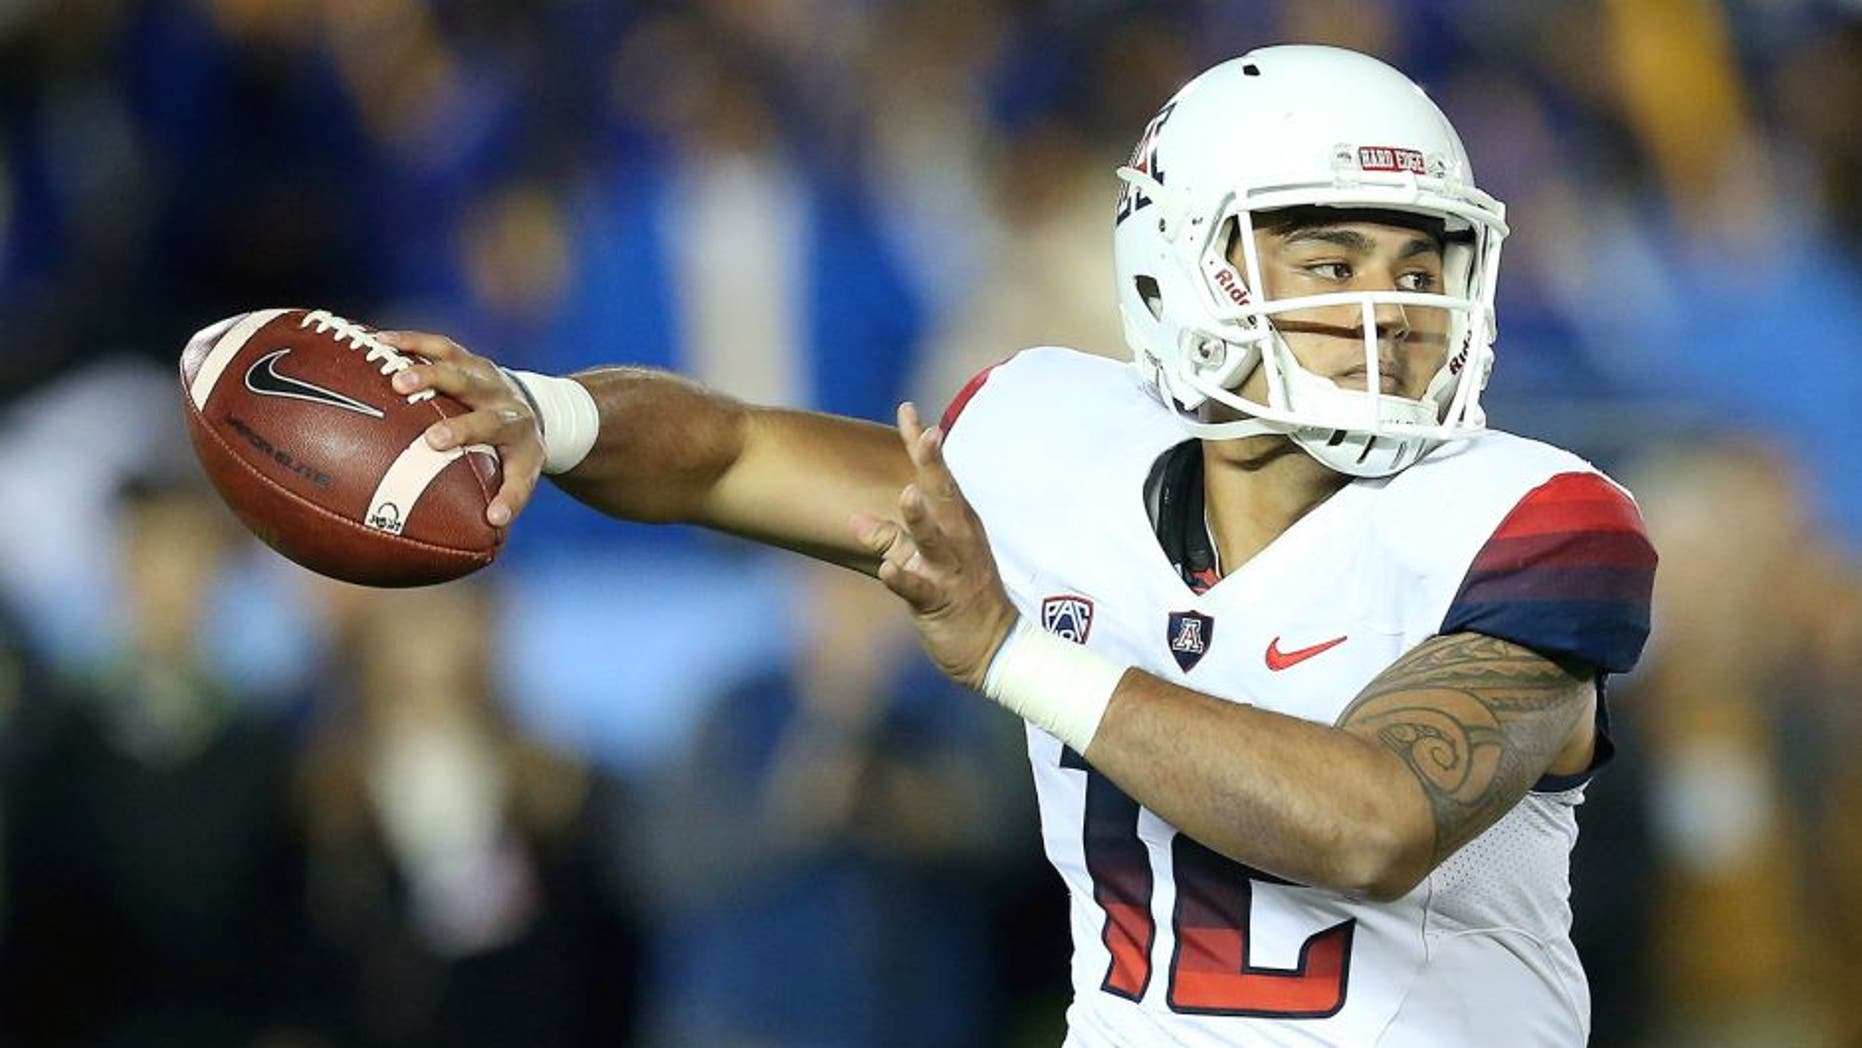 PASADENA, CA - NOVEMBER 01: Quarterback Anu Solomon #12 of the Arizona Wildcats rolls out to throw a pass against the UCLA Bruins at the Rose Bowl on November 1, 2014 in Pasadena, California. (Photo by Stephen Dunn/Getty Images)